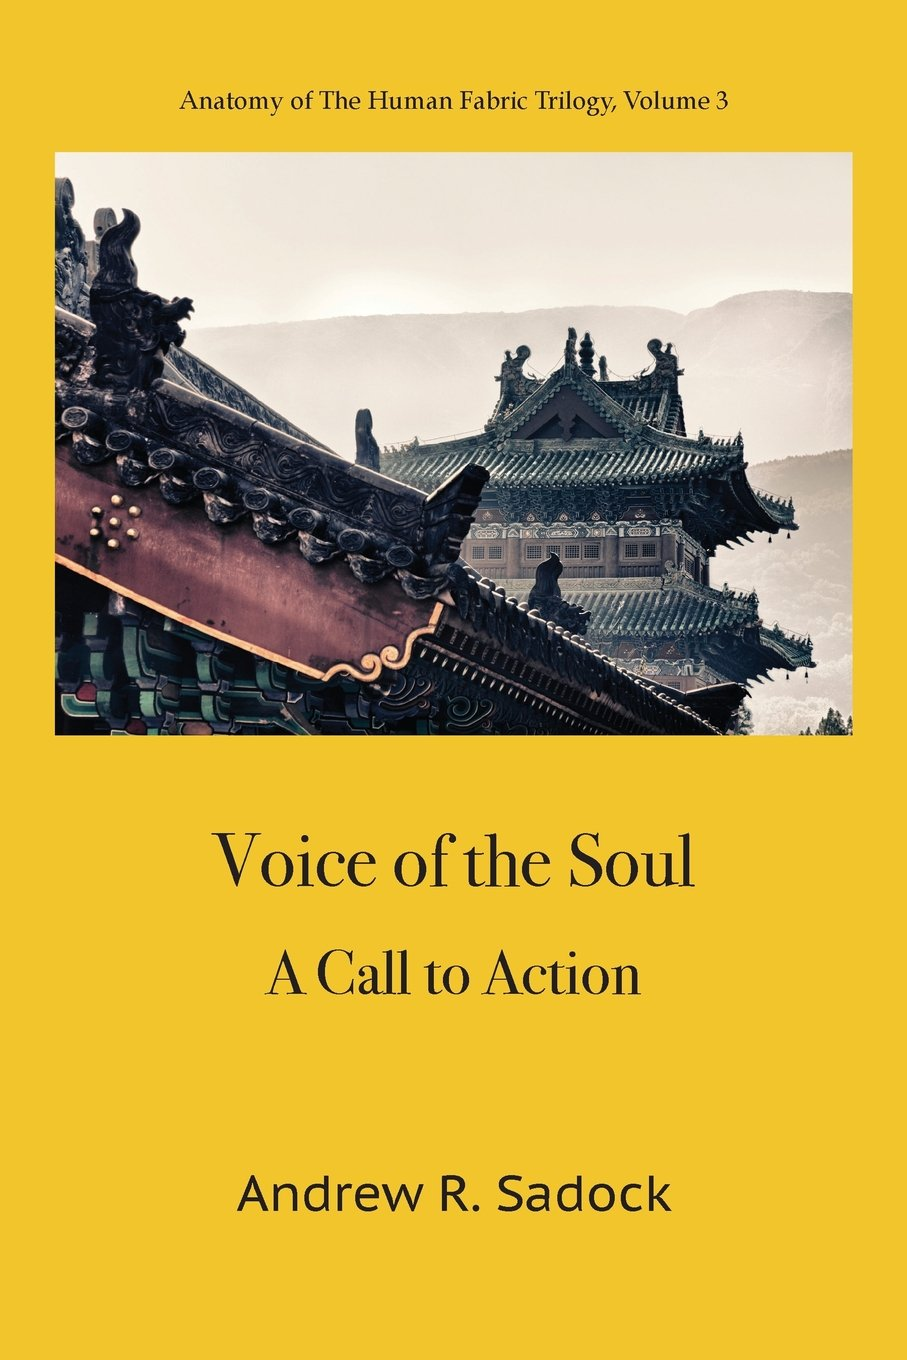 Voice of the Soul: A Call to Action: Andrew R. Sadock: 9781938459412 ...